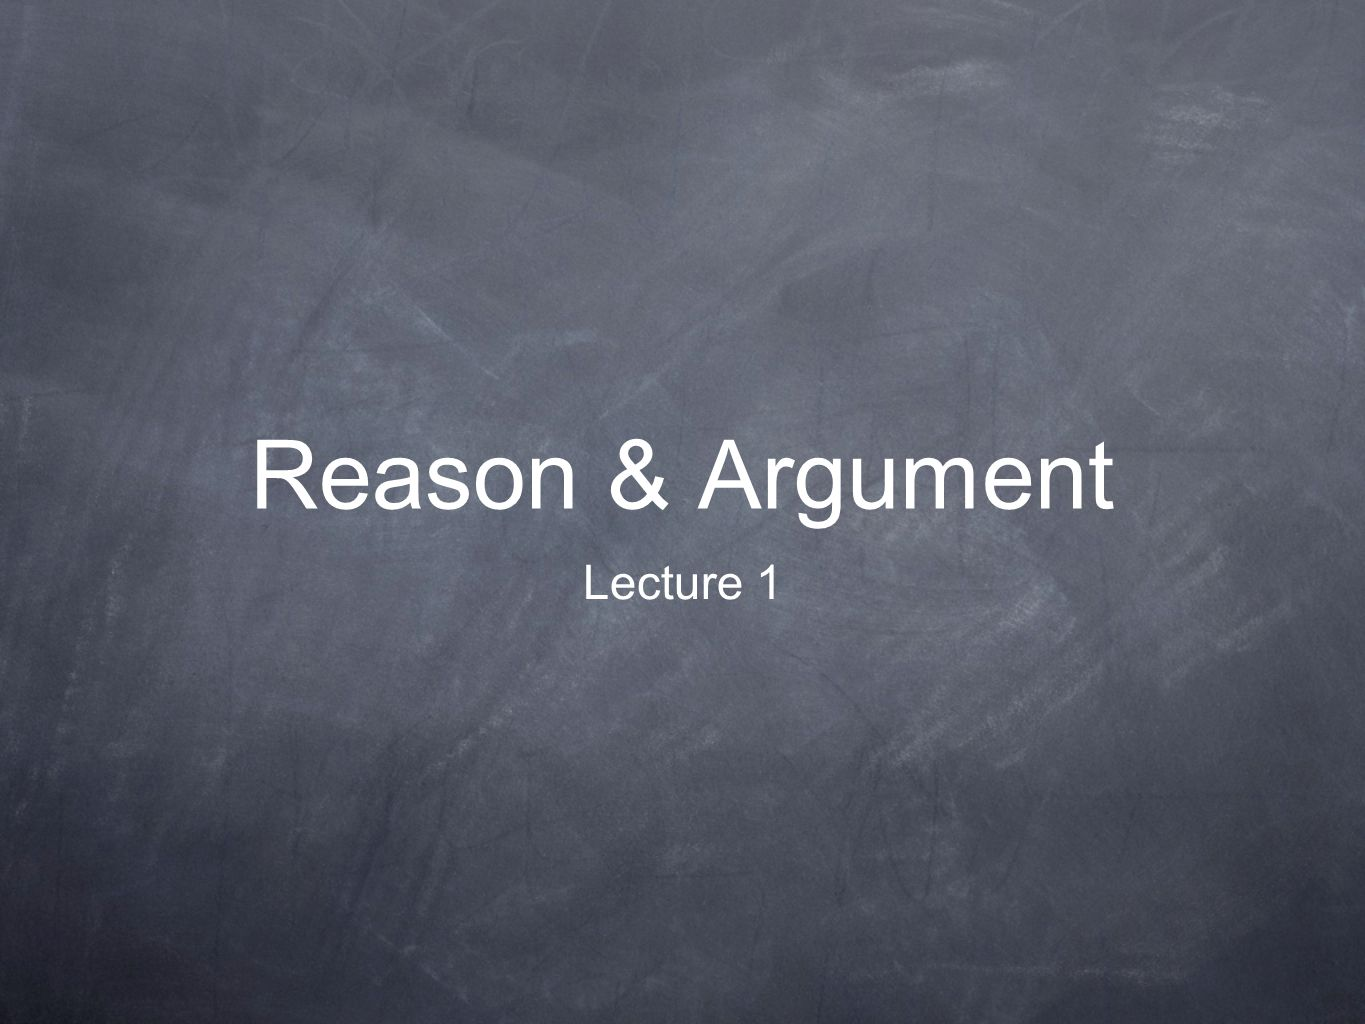 (3) Some Key Concepts One point illustrated by some of those arguments is: The order in which the parts of an argument are presented doesn't necessarily indicate what the argument's parts are — conclusions may be presented before premises.